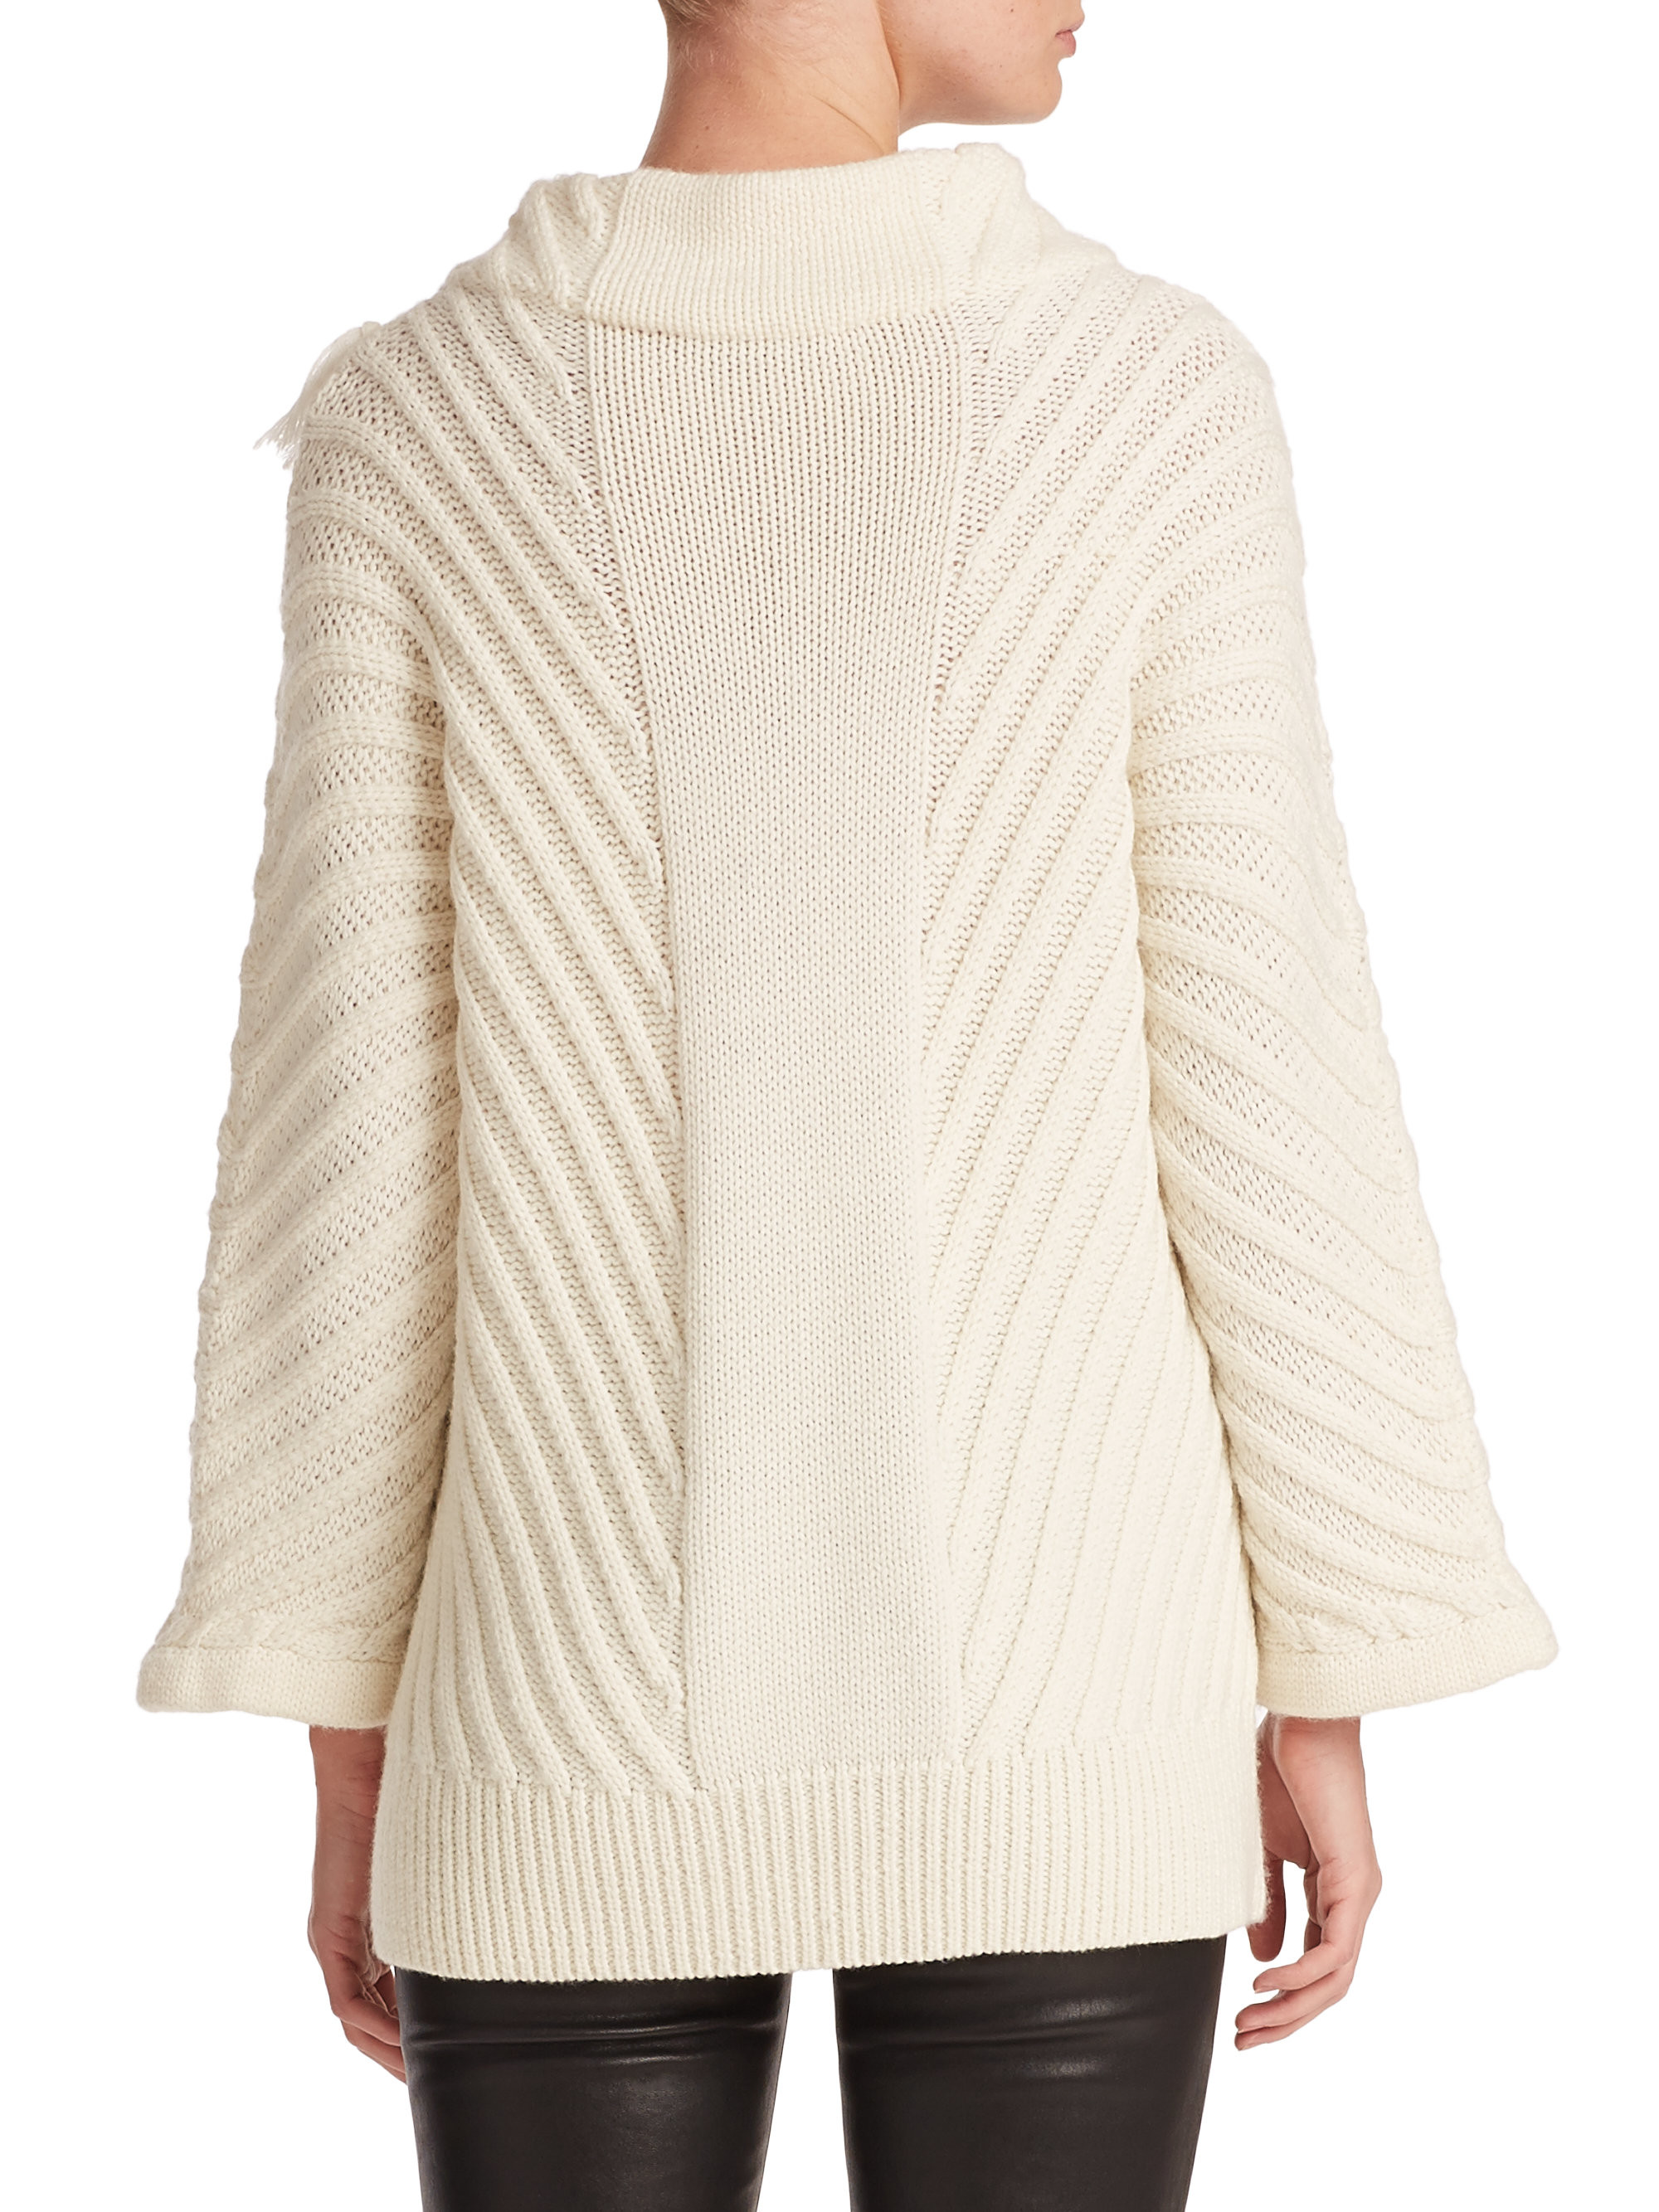 Tess giberson Chunky Cable knit Sweater in White